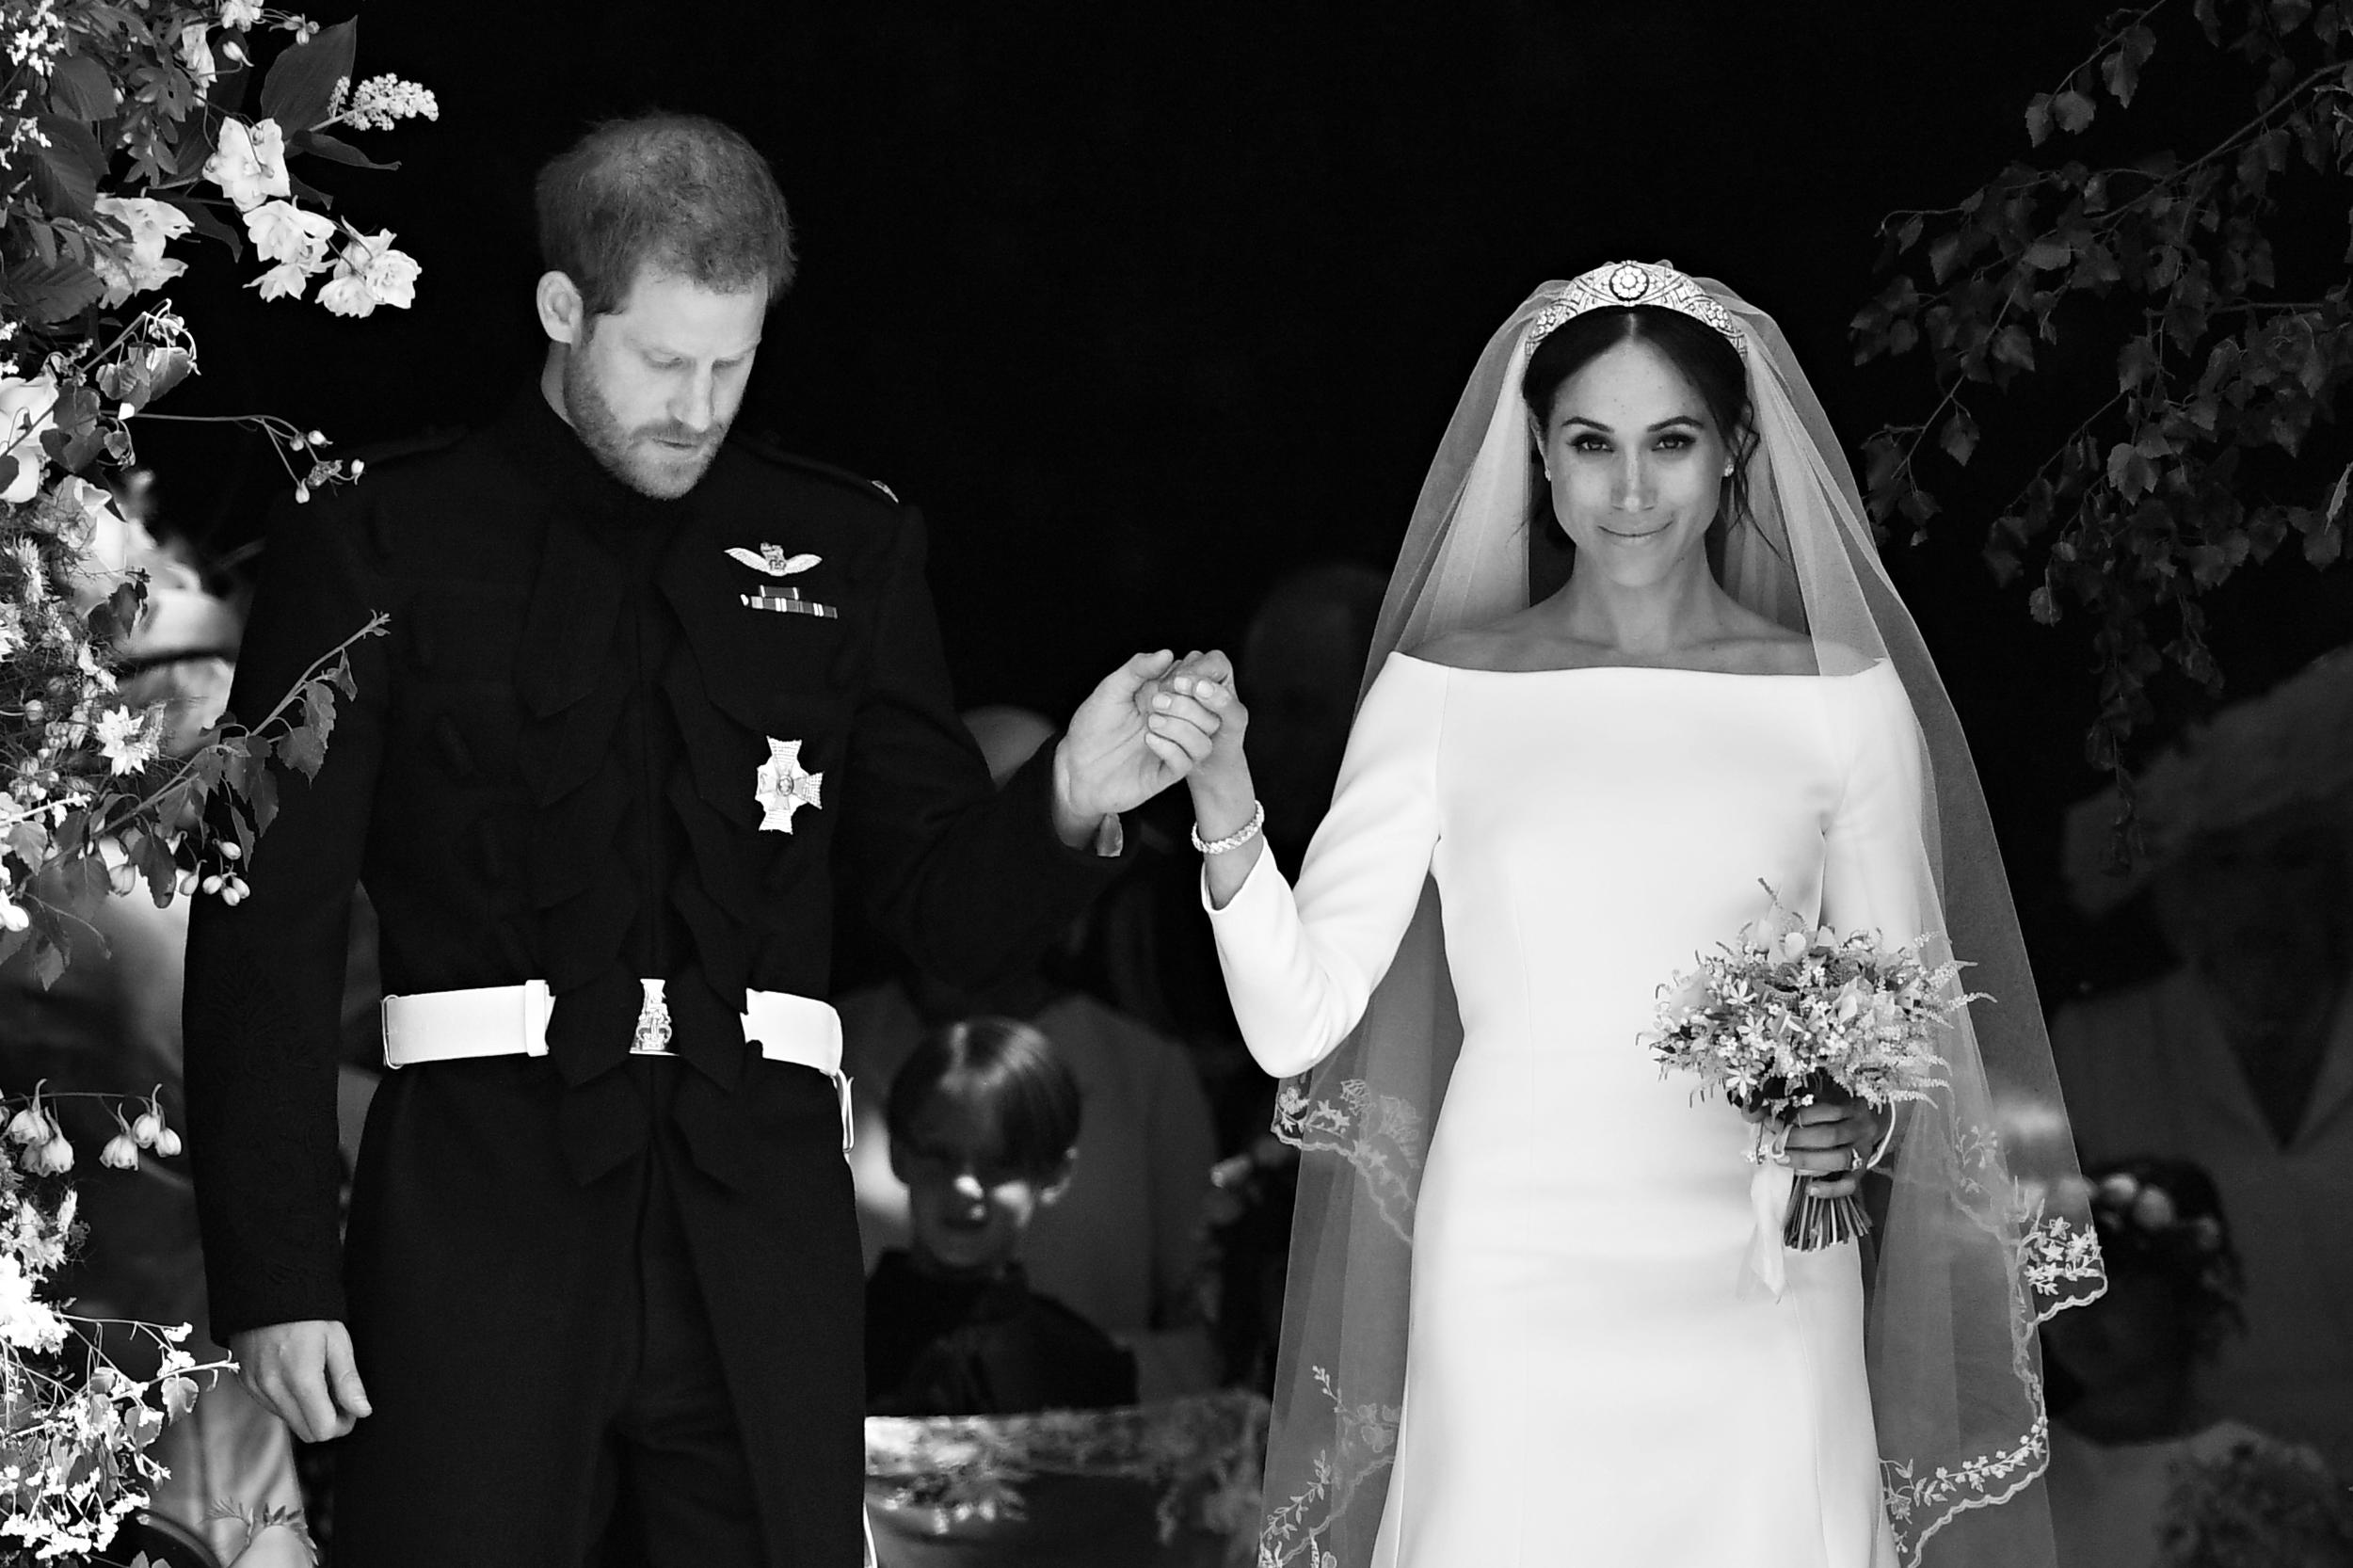 <p>Britain's Prince Harry, Duke of Sussex and his wife Meghan, Duchess of Sussex emerge from the West Door of St George's Chapel, Windsor Castle, in Windsor, on May 19, 2018 after their wedding ceremony.</p>  <p>(Photo by Ben STANSALL / POOL / AFP)</p>